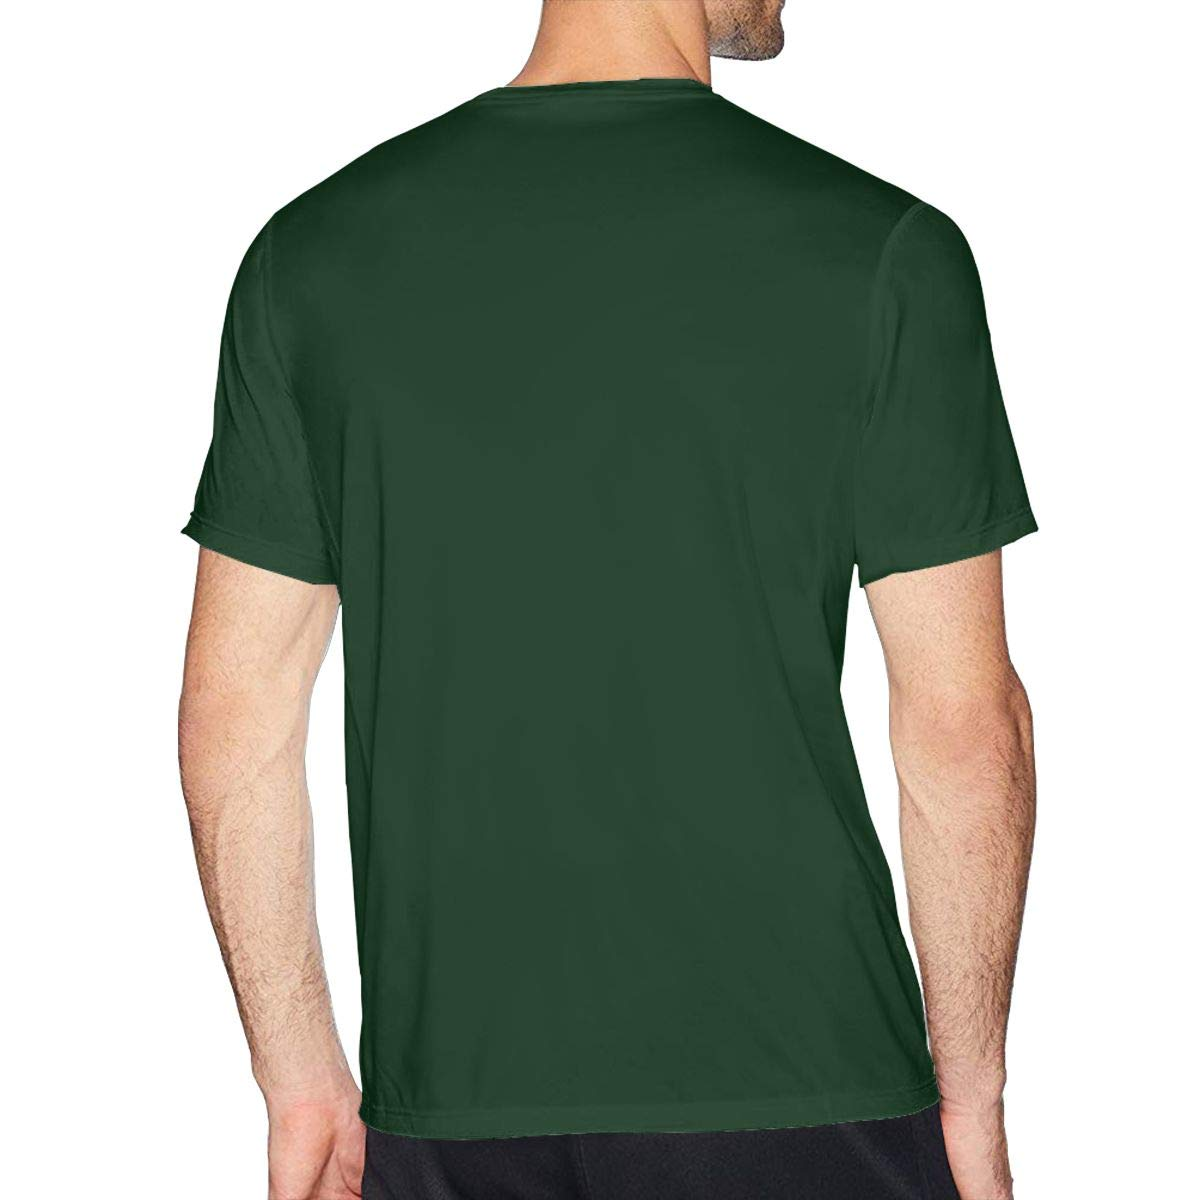 Bfcxbgdsig My Hero College Soft and Comfortable Fashionable Tee with Round Collar Forest Green